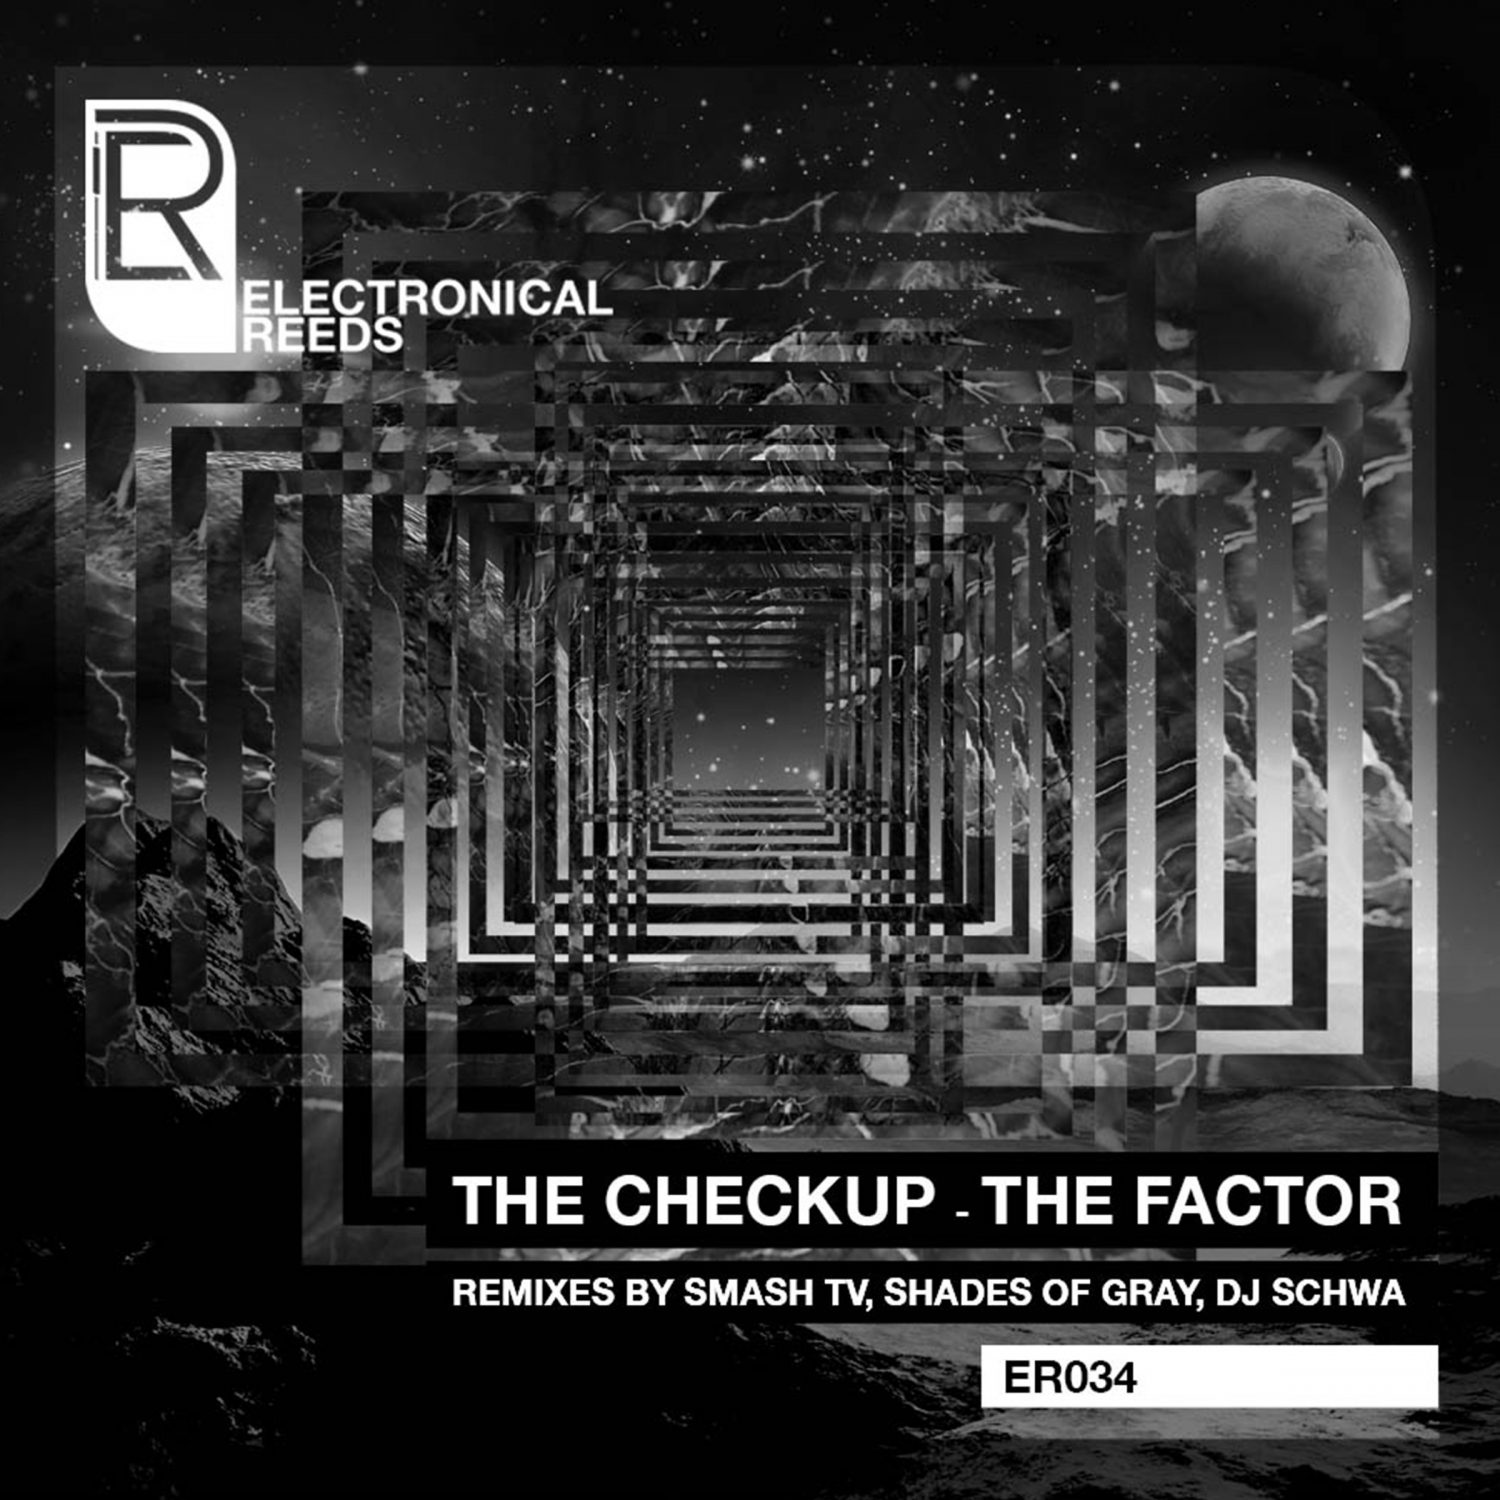 ER034 - The Checkup - The Factor (incl. Smash TV, Shades Of Gray Remix) - Electronical Reeds